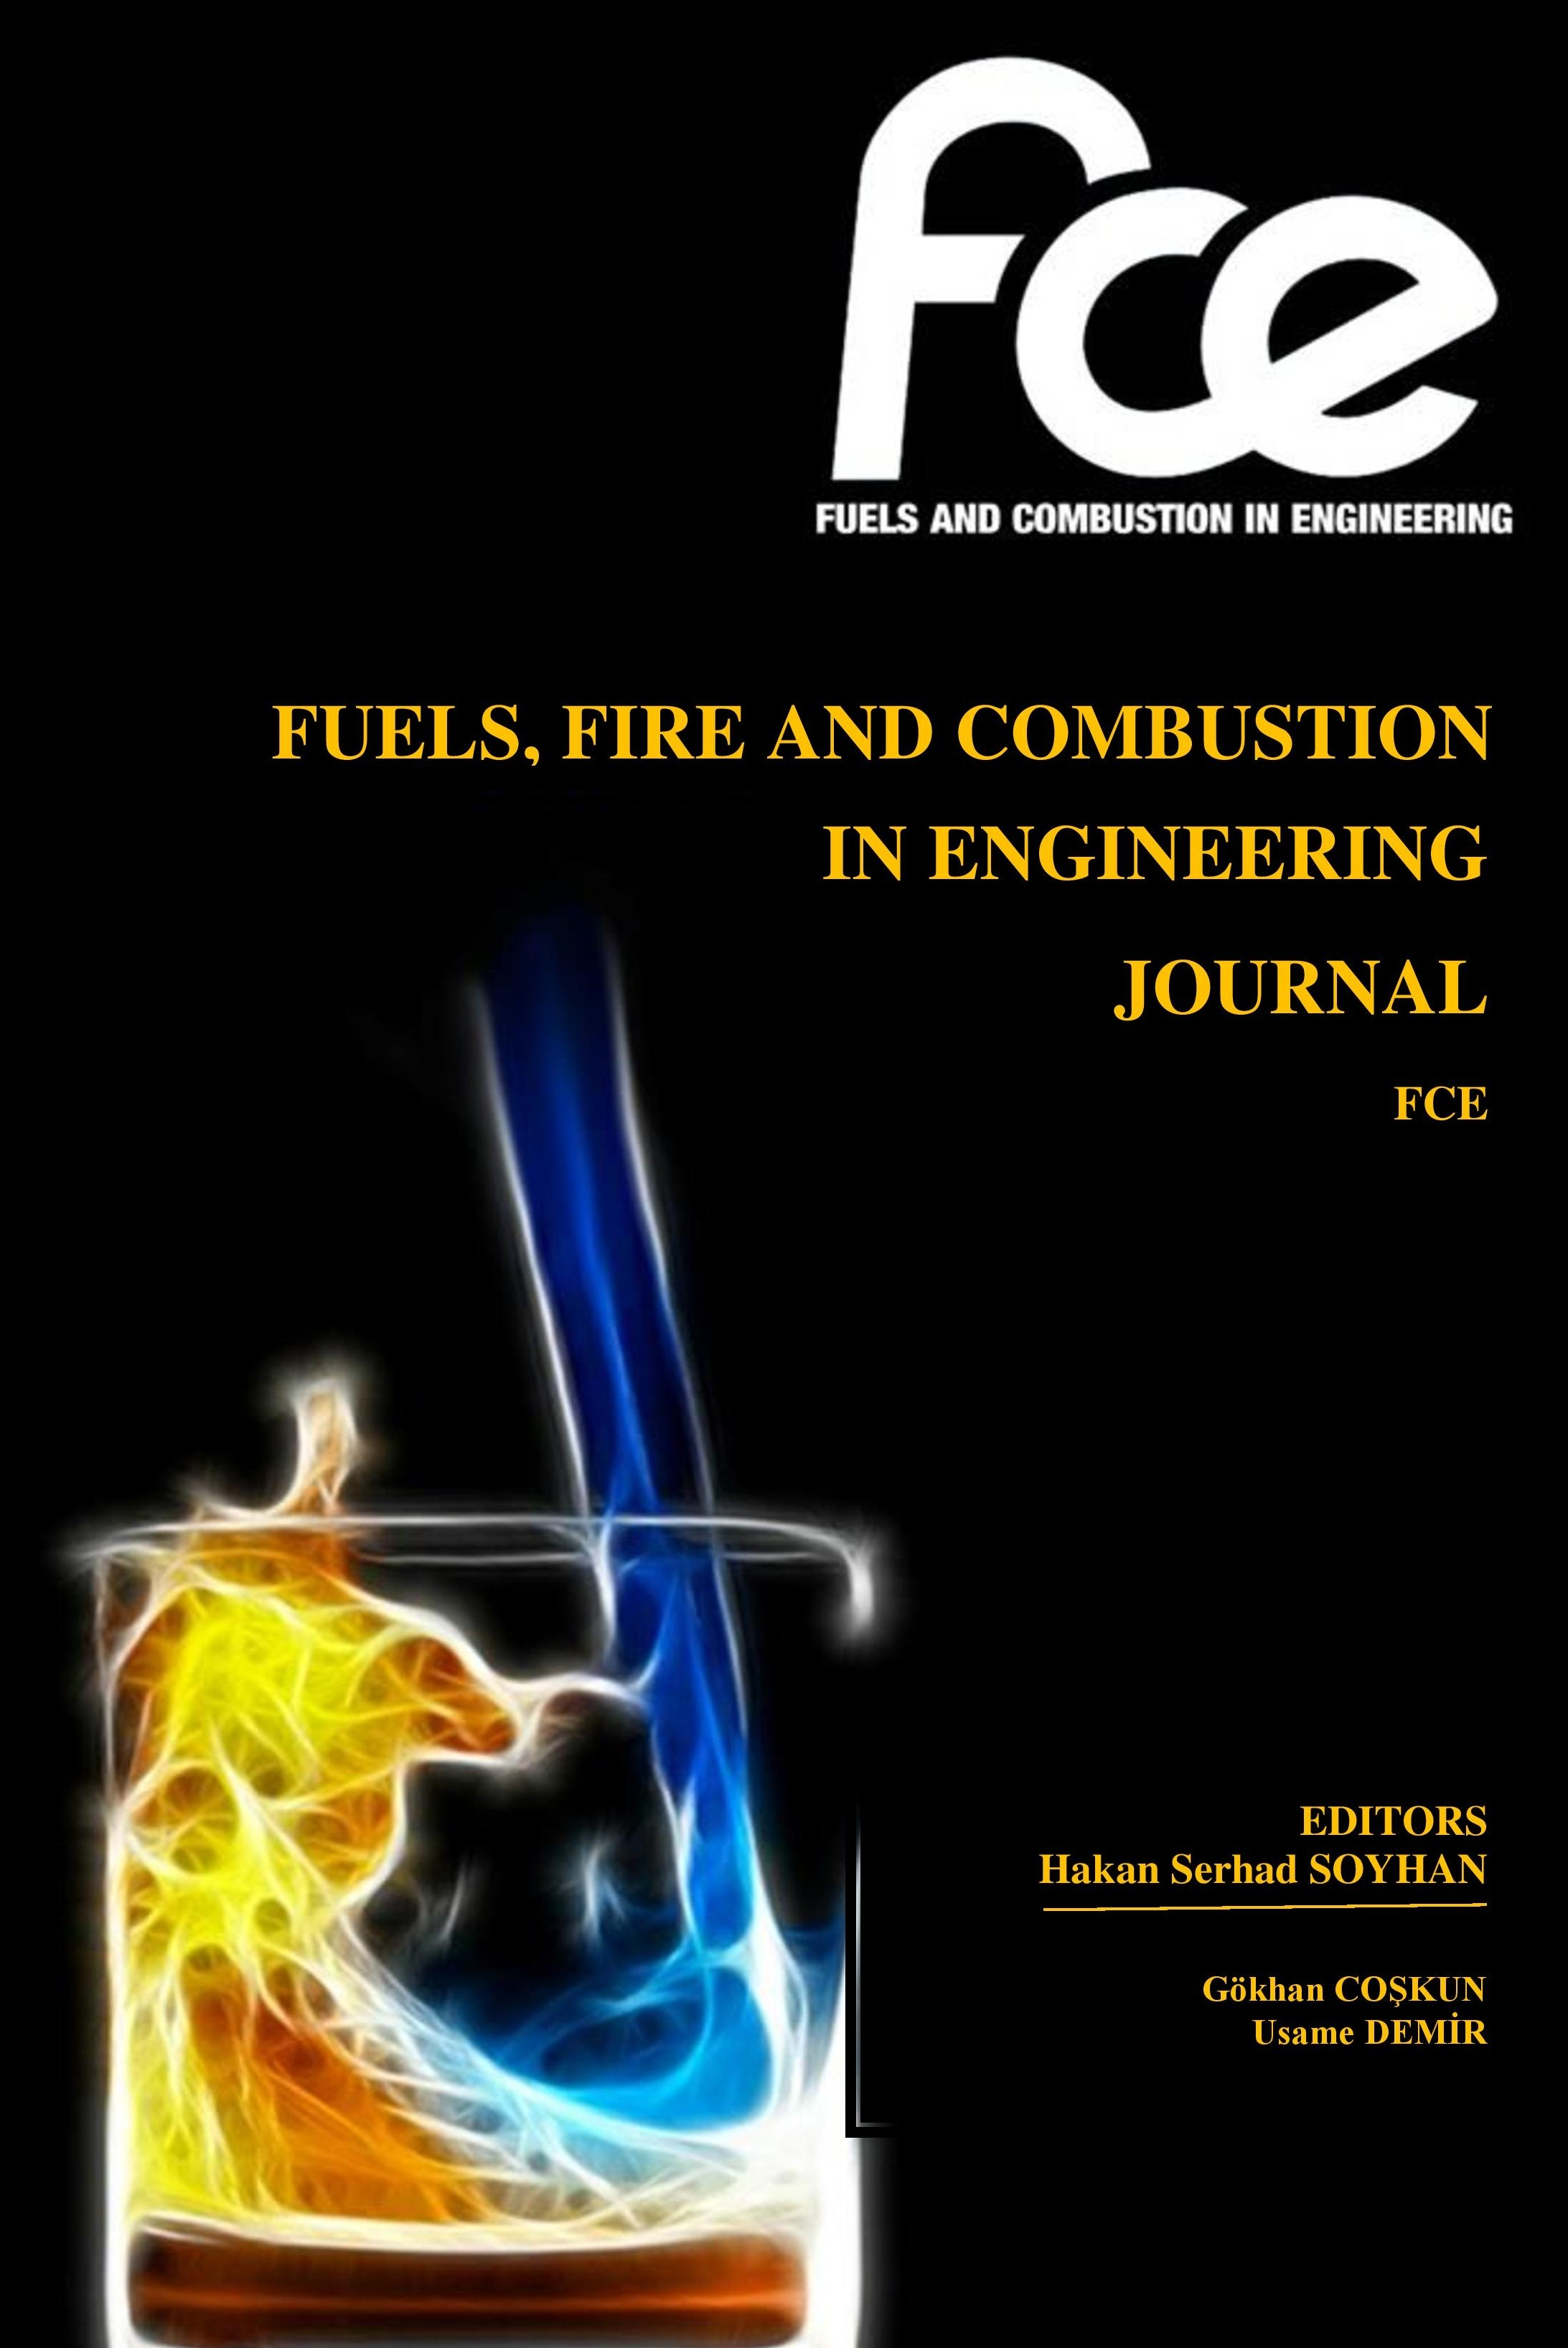 International Journal of Fuels Fire and Combustion